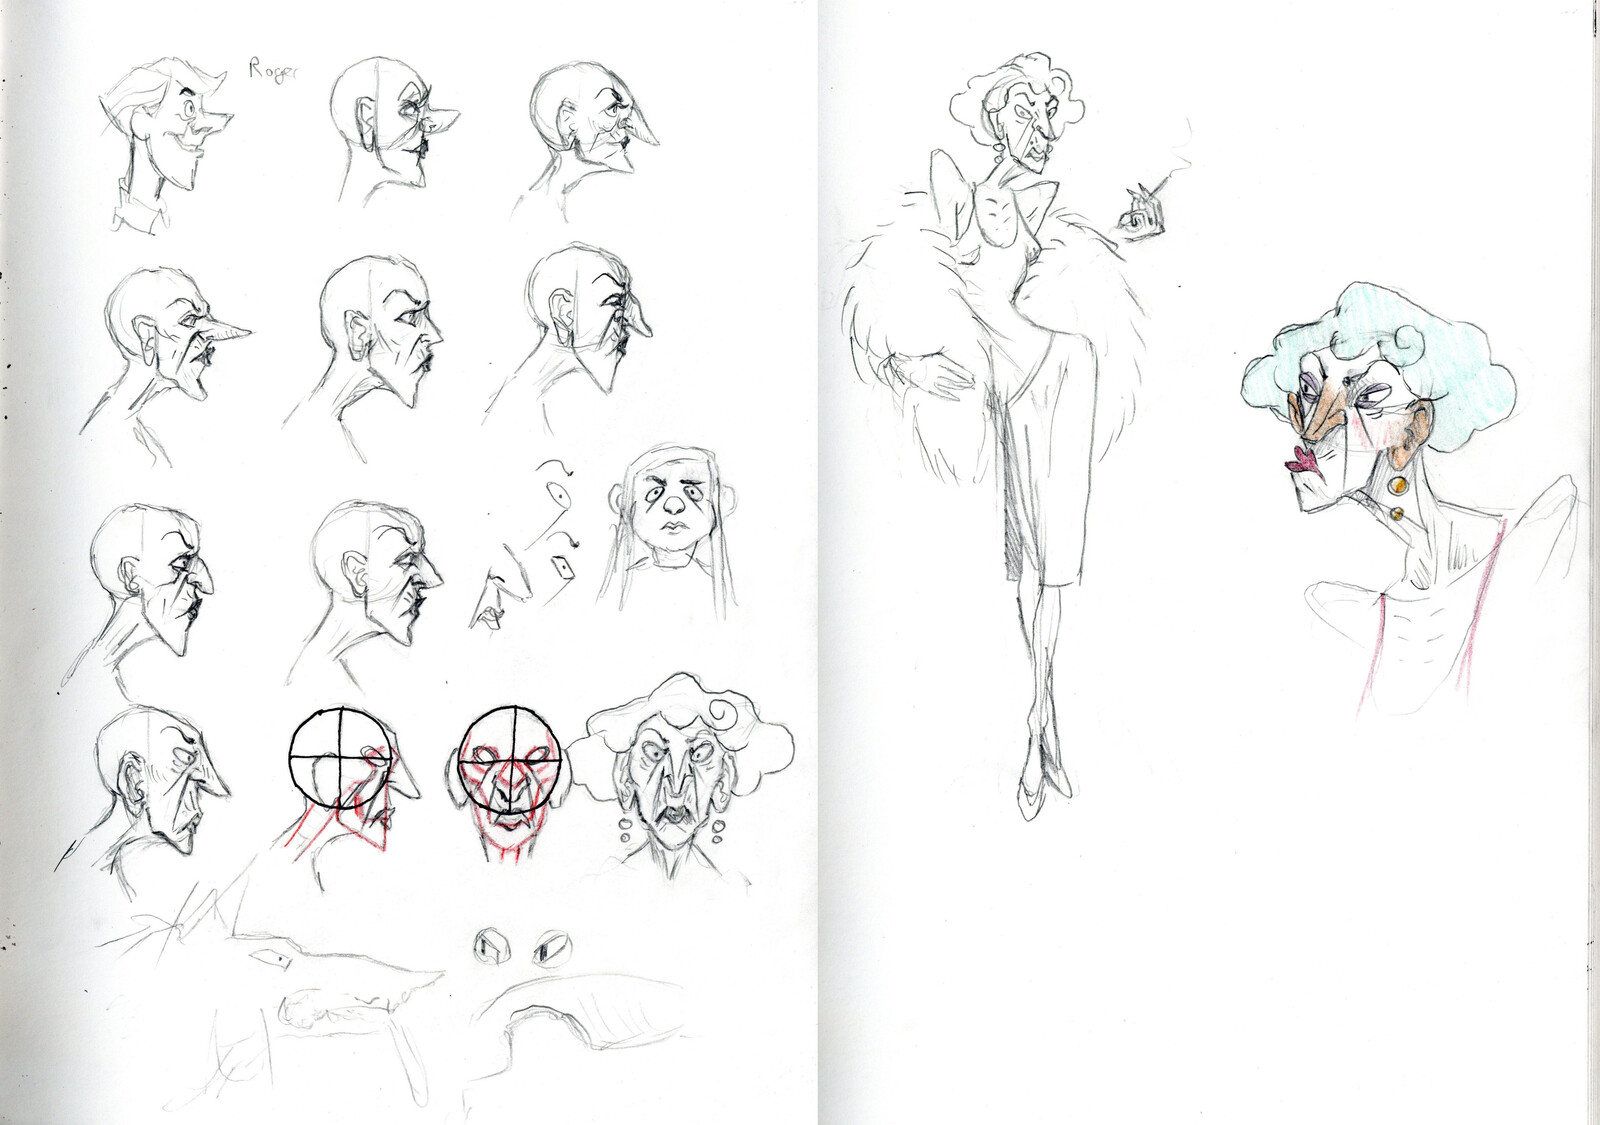 My early Veronique concepts.